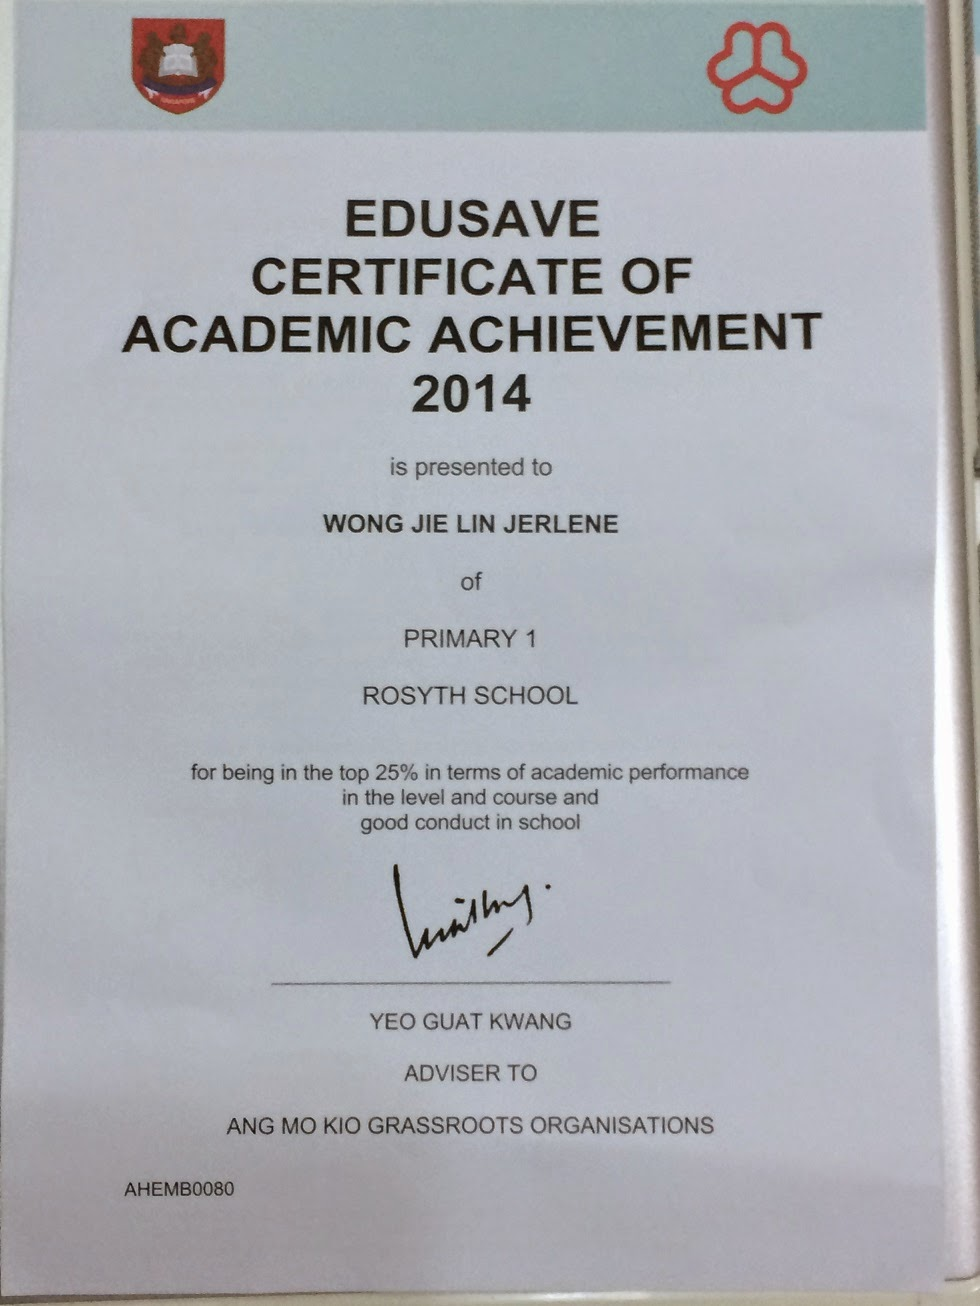 my little princess and prince 25 nov 2014 certificate of academic